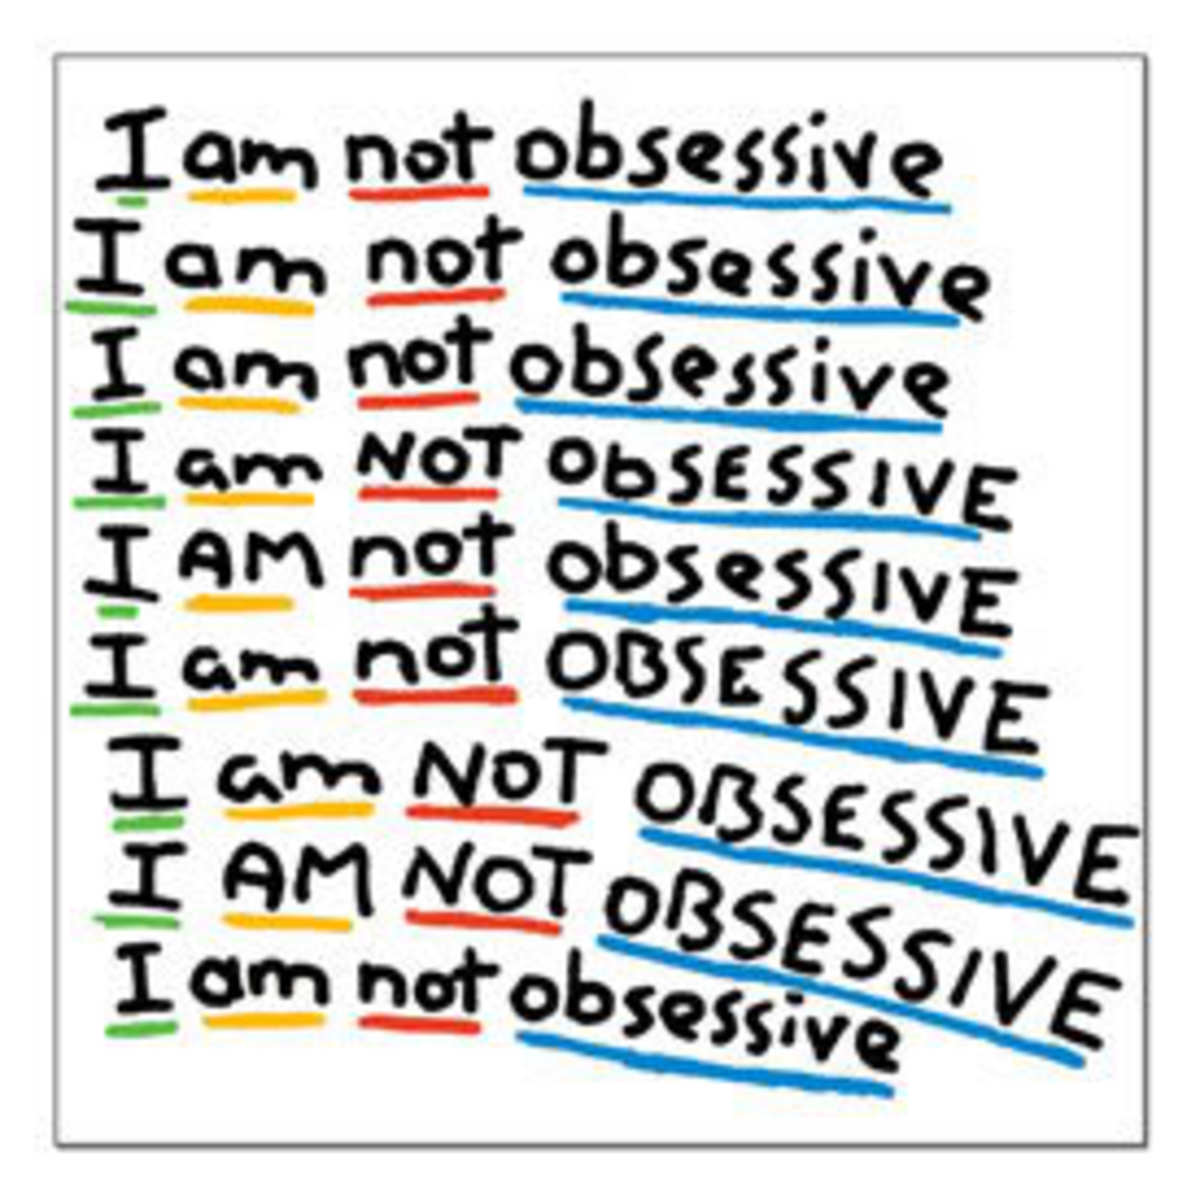 Am I Obsessive? Take the Quiz!